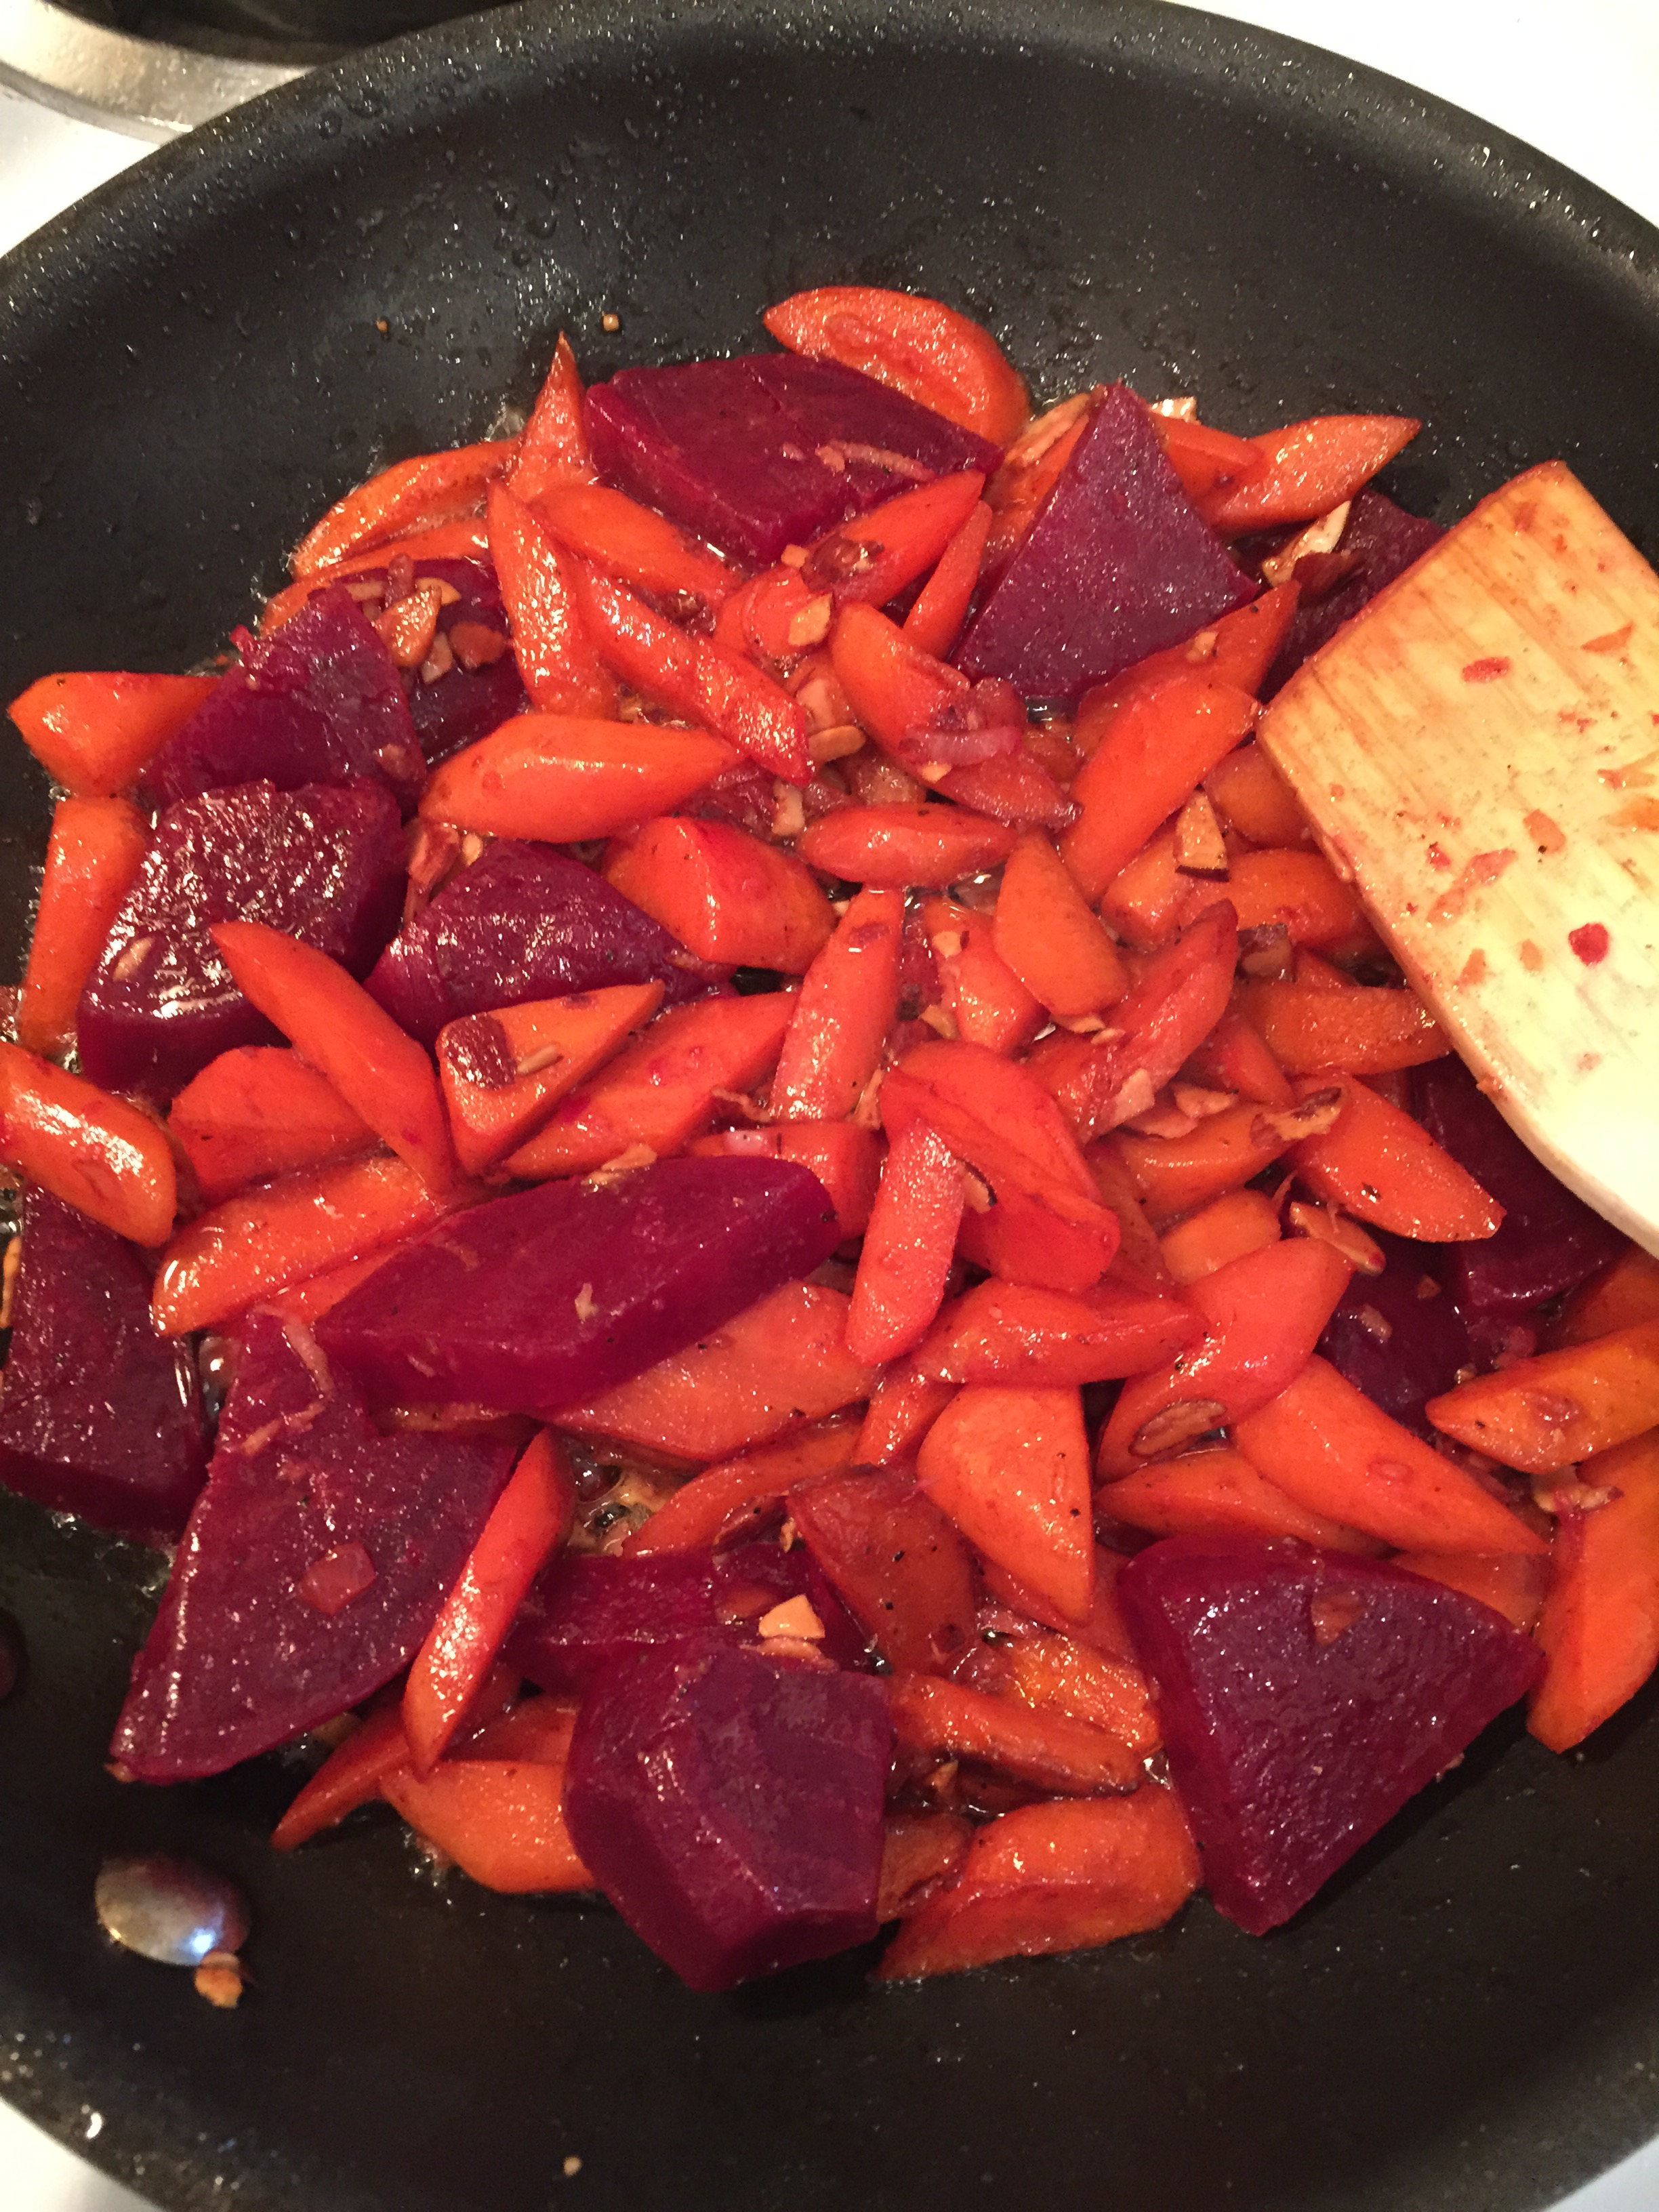 The glistening carrots and beets reminded me of jewels and the pleasure of cooking one's own meal can't be over-estimated.